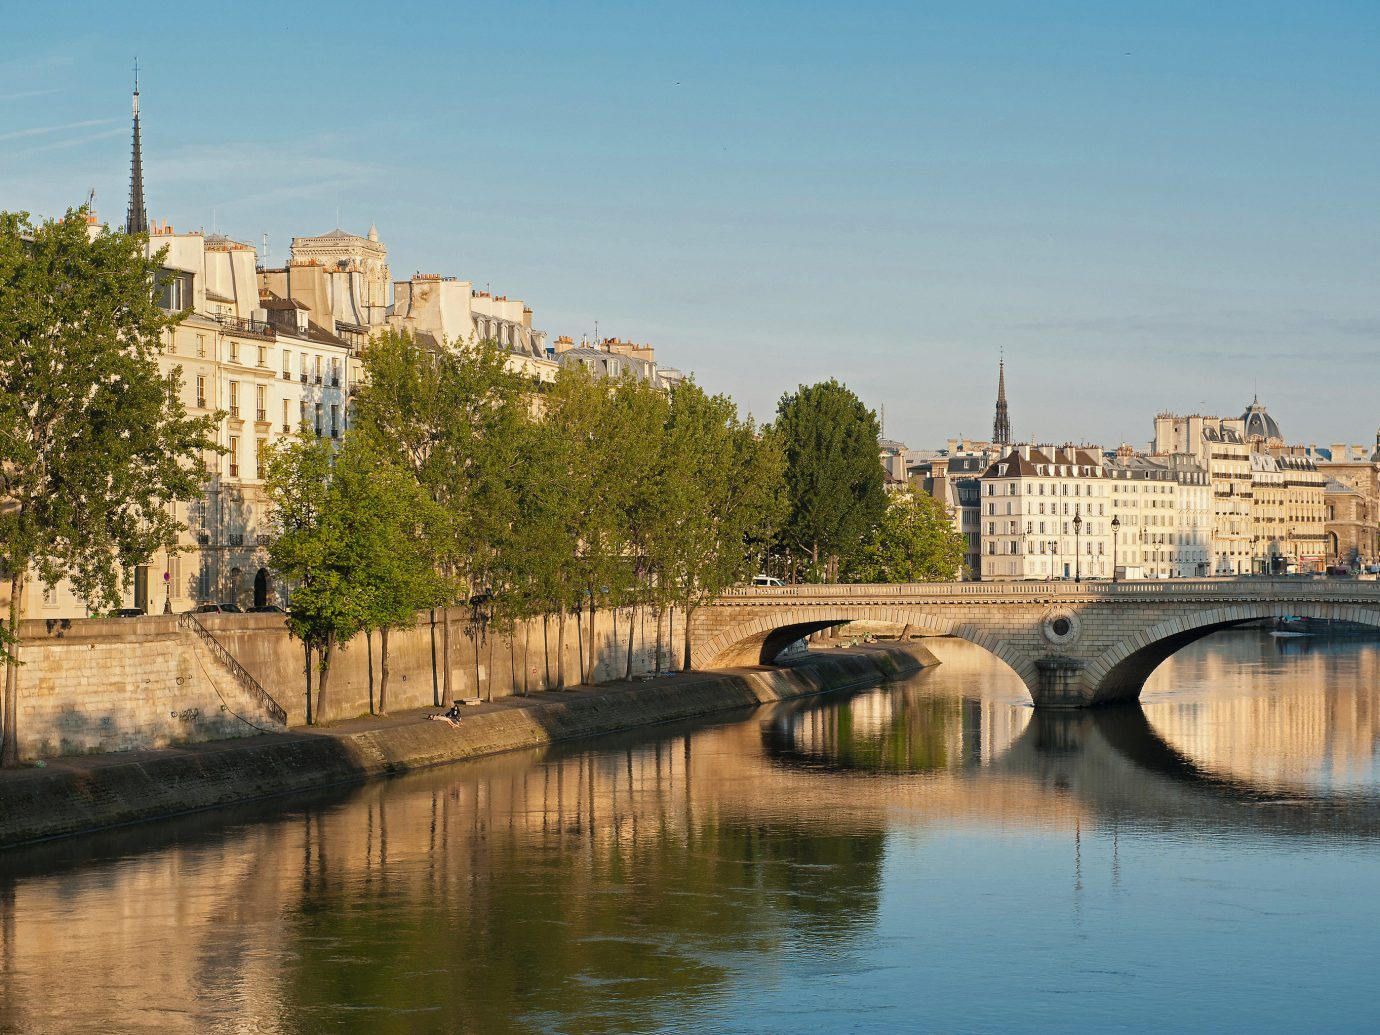 Trip Ideas outdoor water sky River reflection Town waterway Canal vacation bridge moat château cityscape reservoir Sea